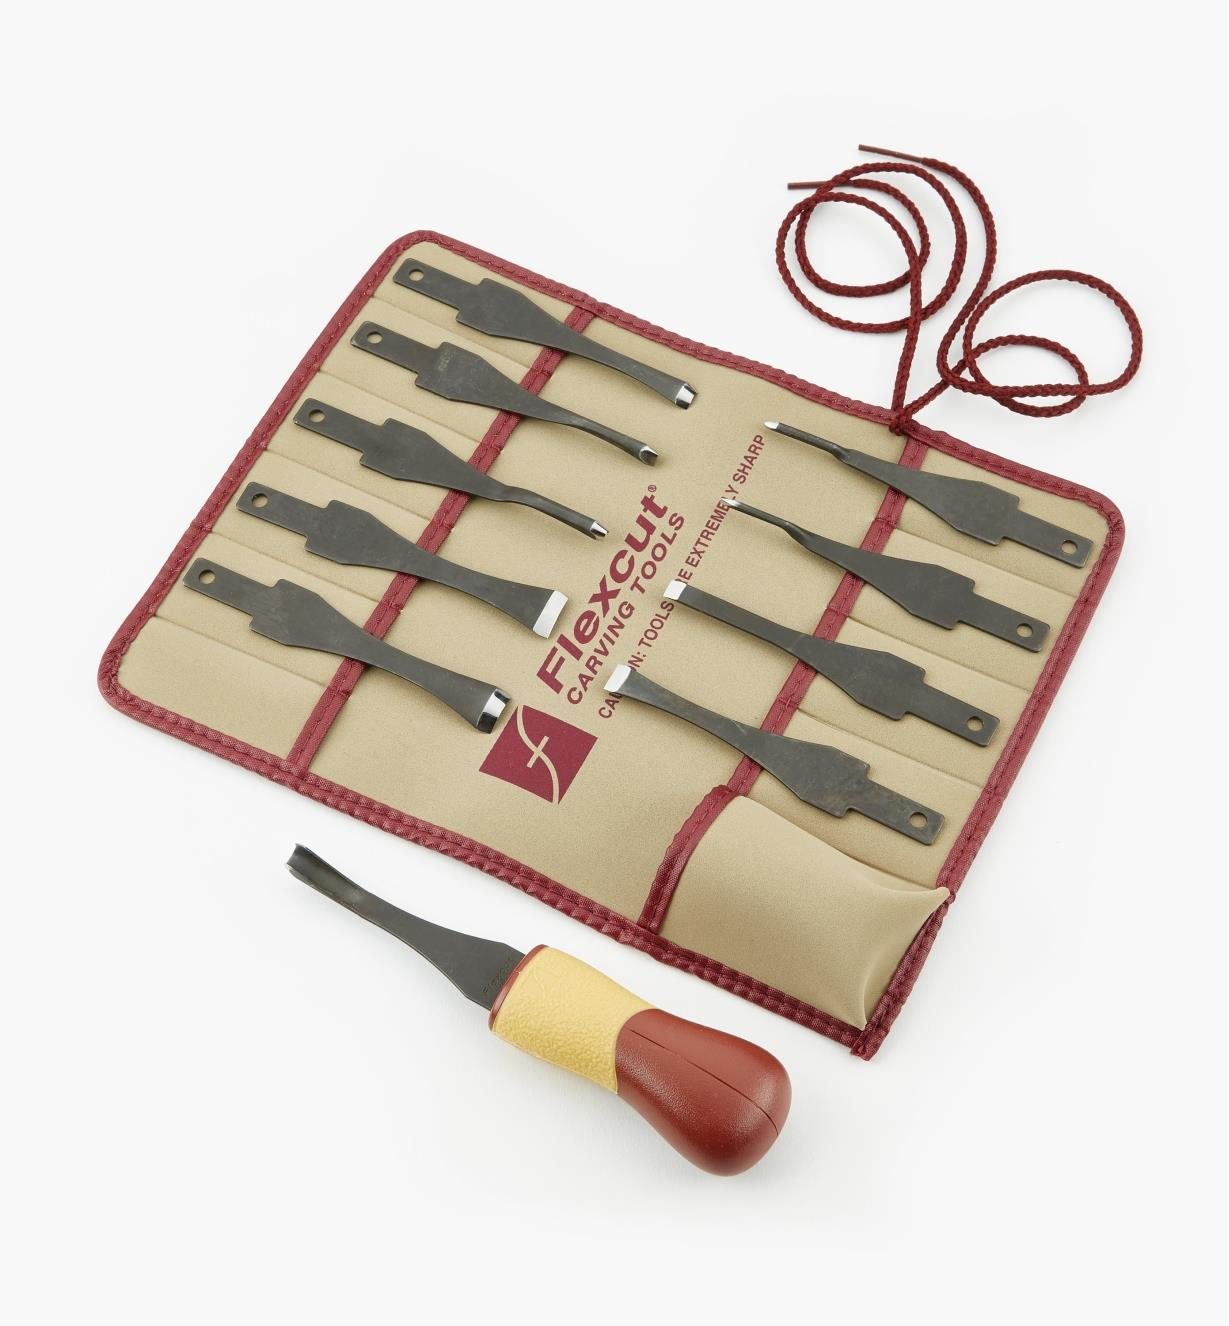 06D0507 - 11-Piece Flexcut Carving Set